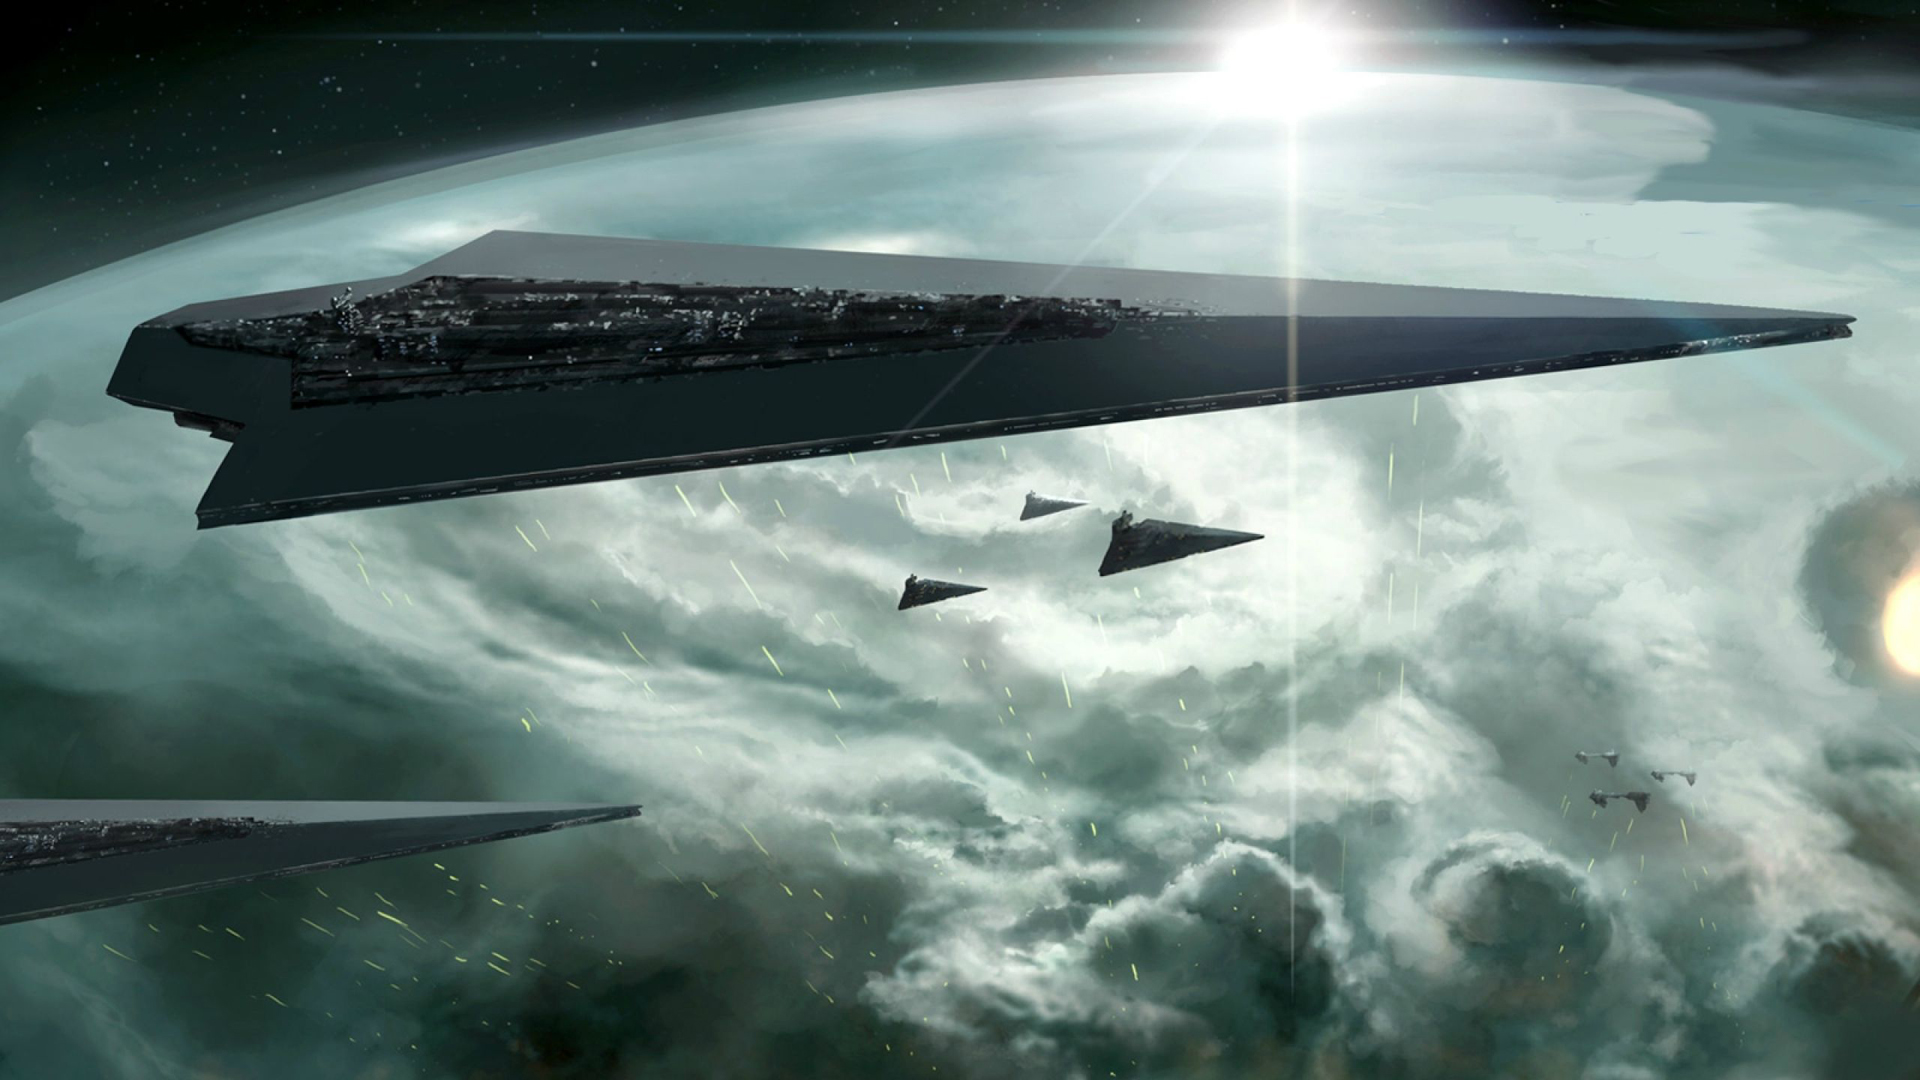 Star Wars Hd Wallpaper Background Image 1920x1080 Id 584818 Wallpaper Abyss